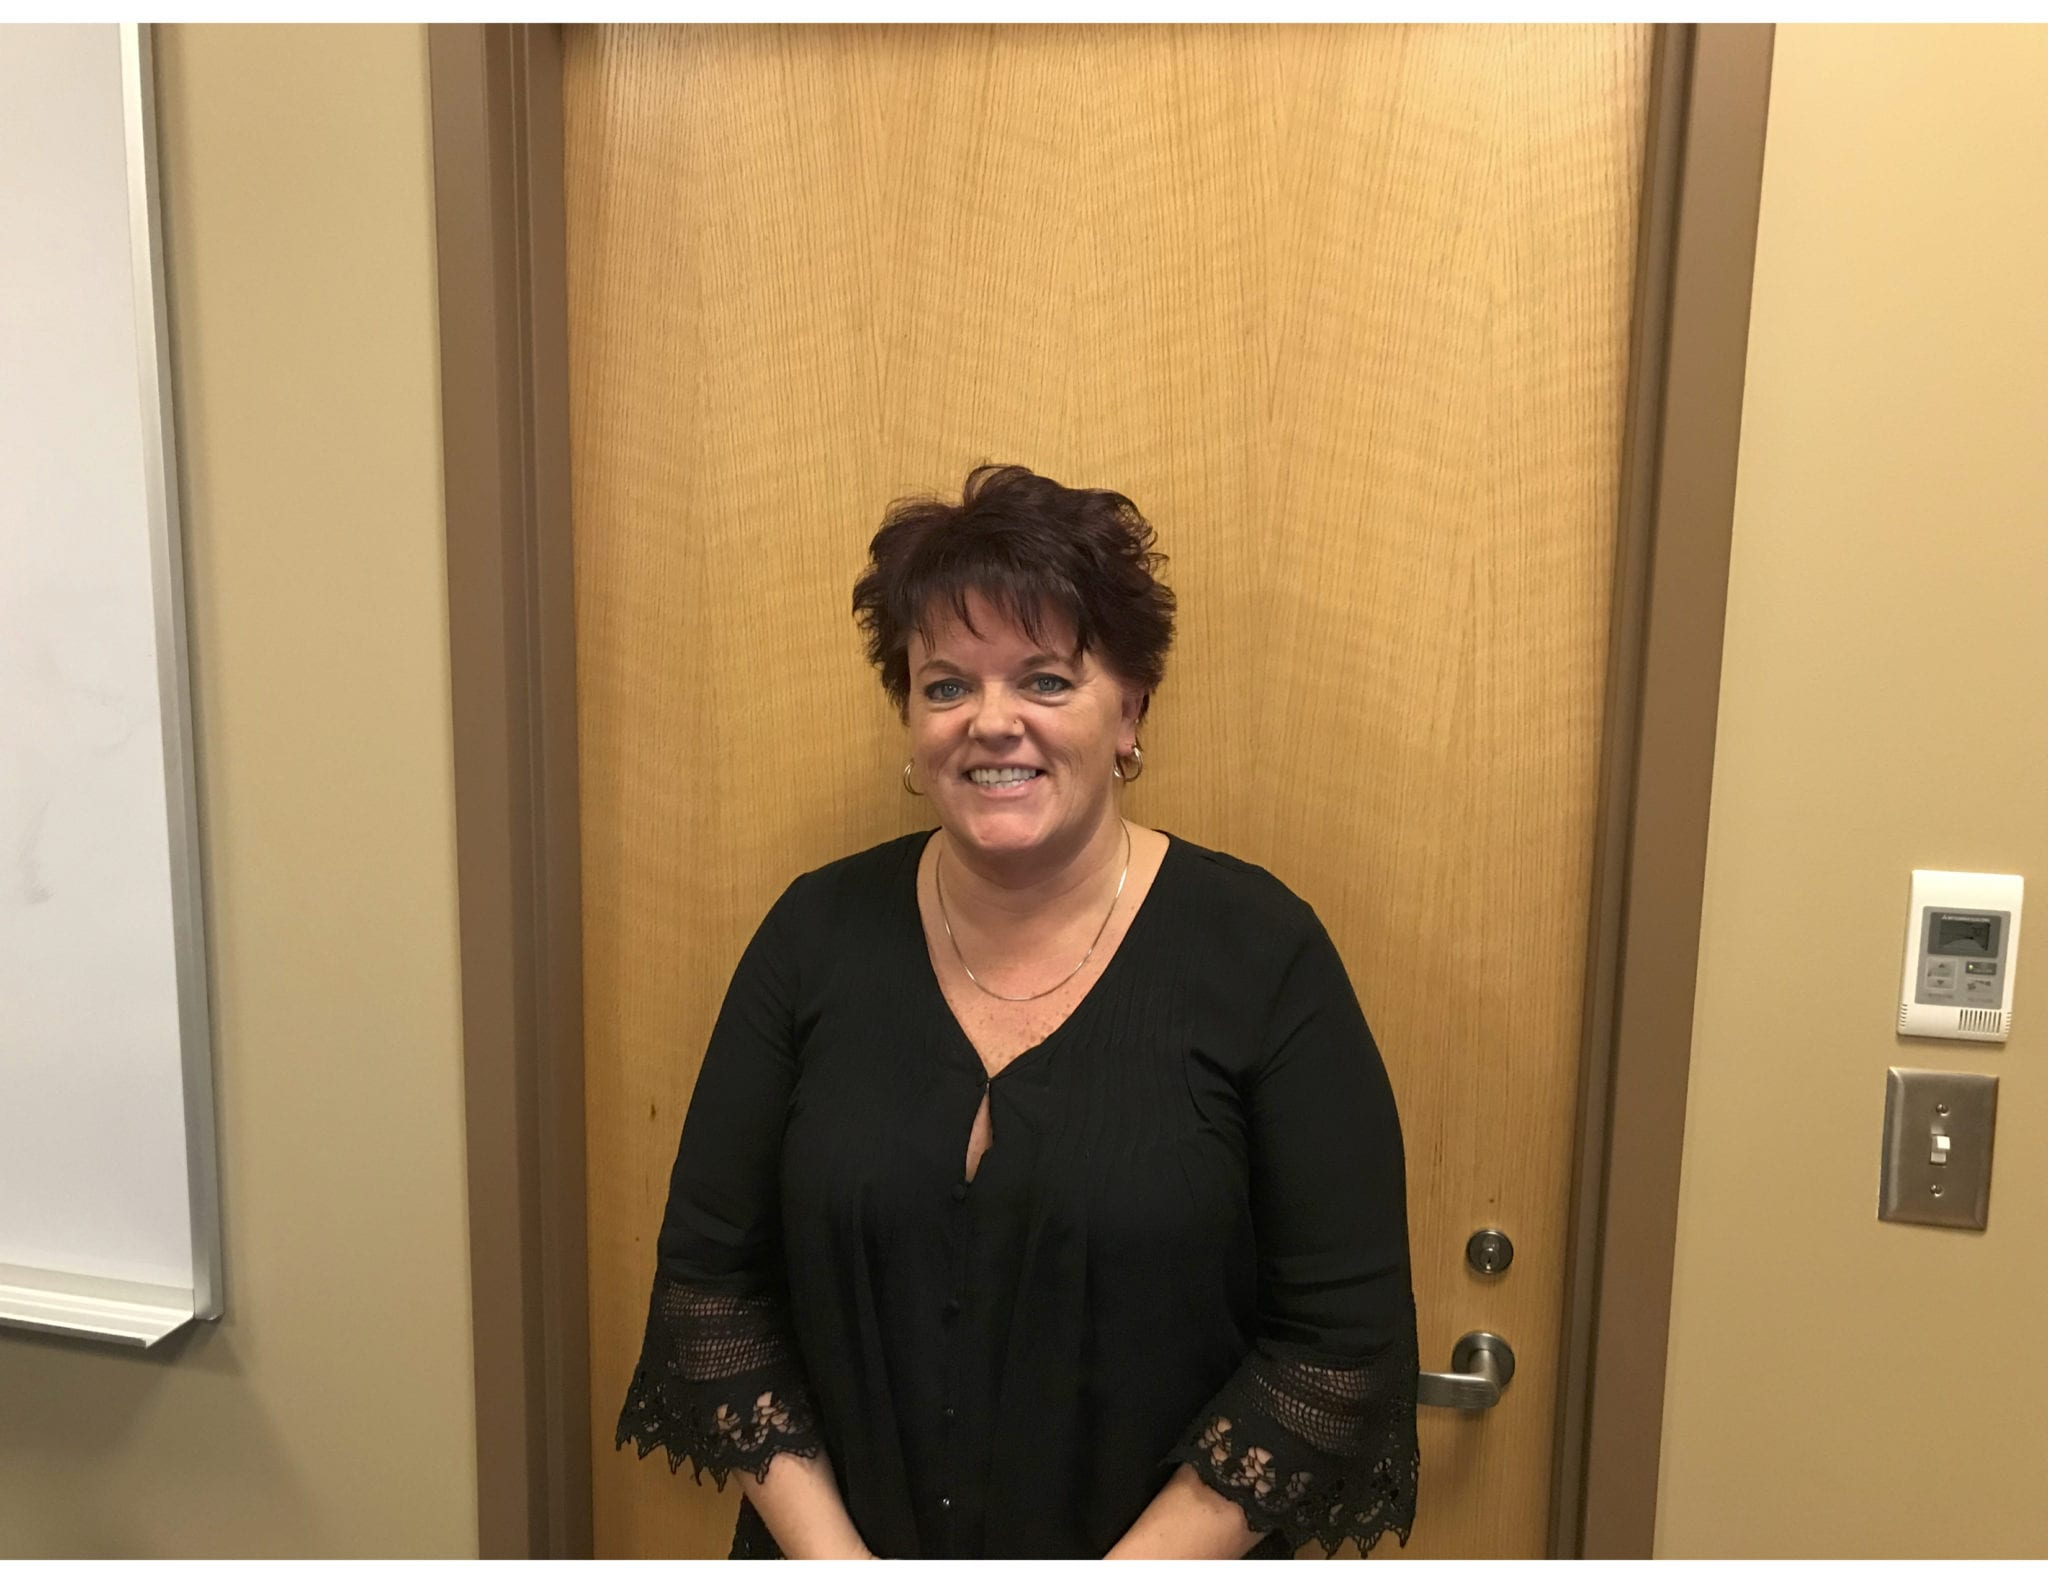 Donna Kivlin Recovery Coach at the Northwest Middlesex Community Outreach Initiative Network